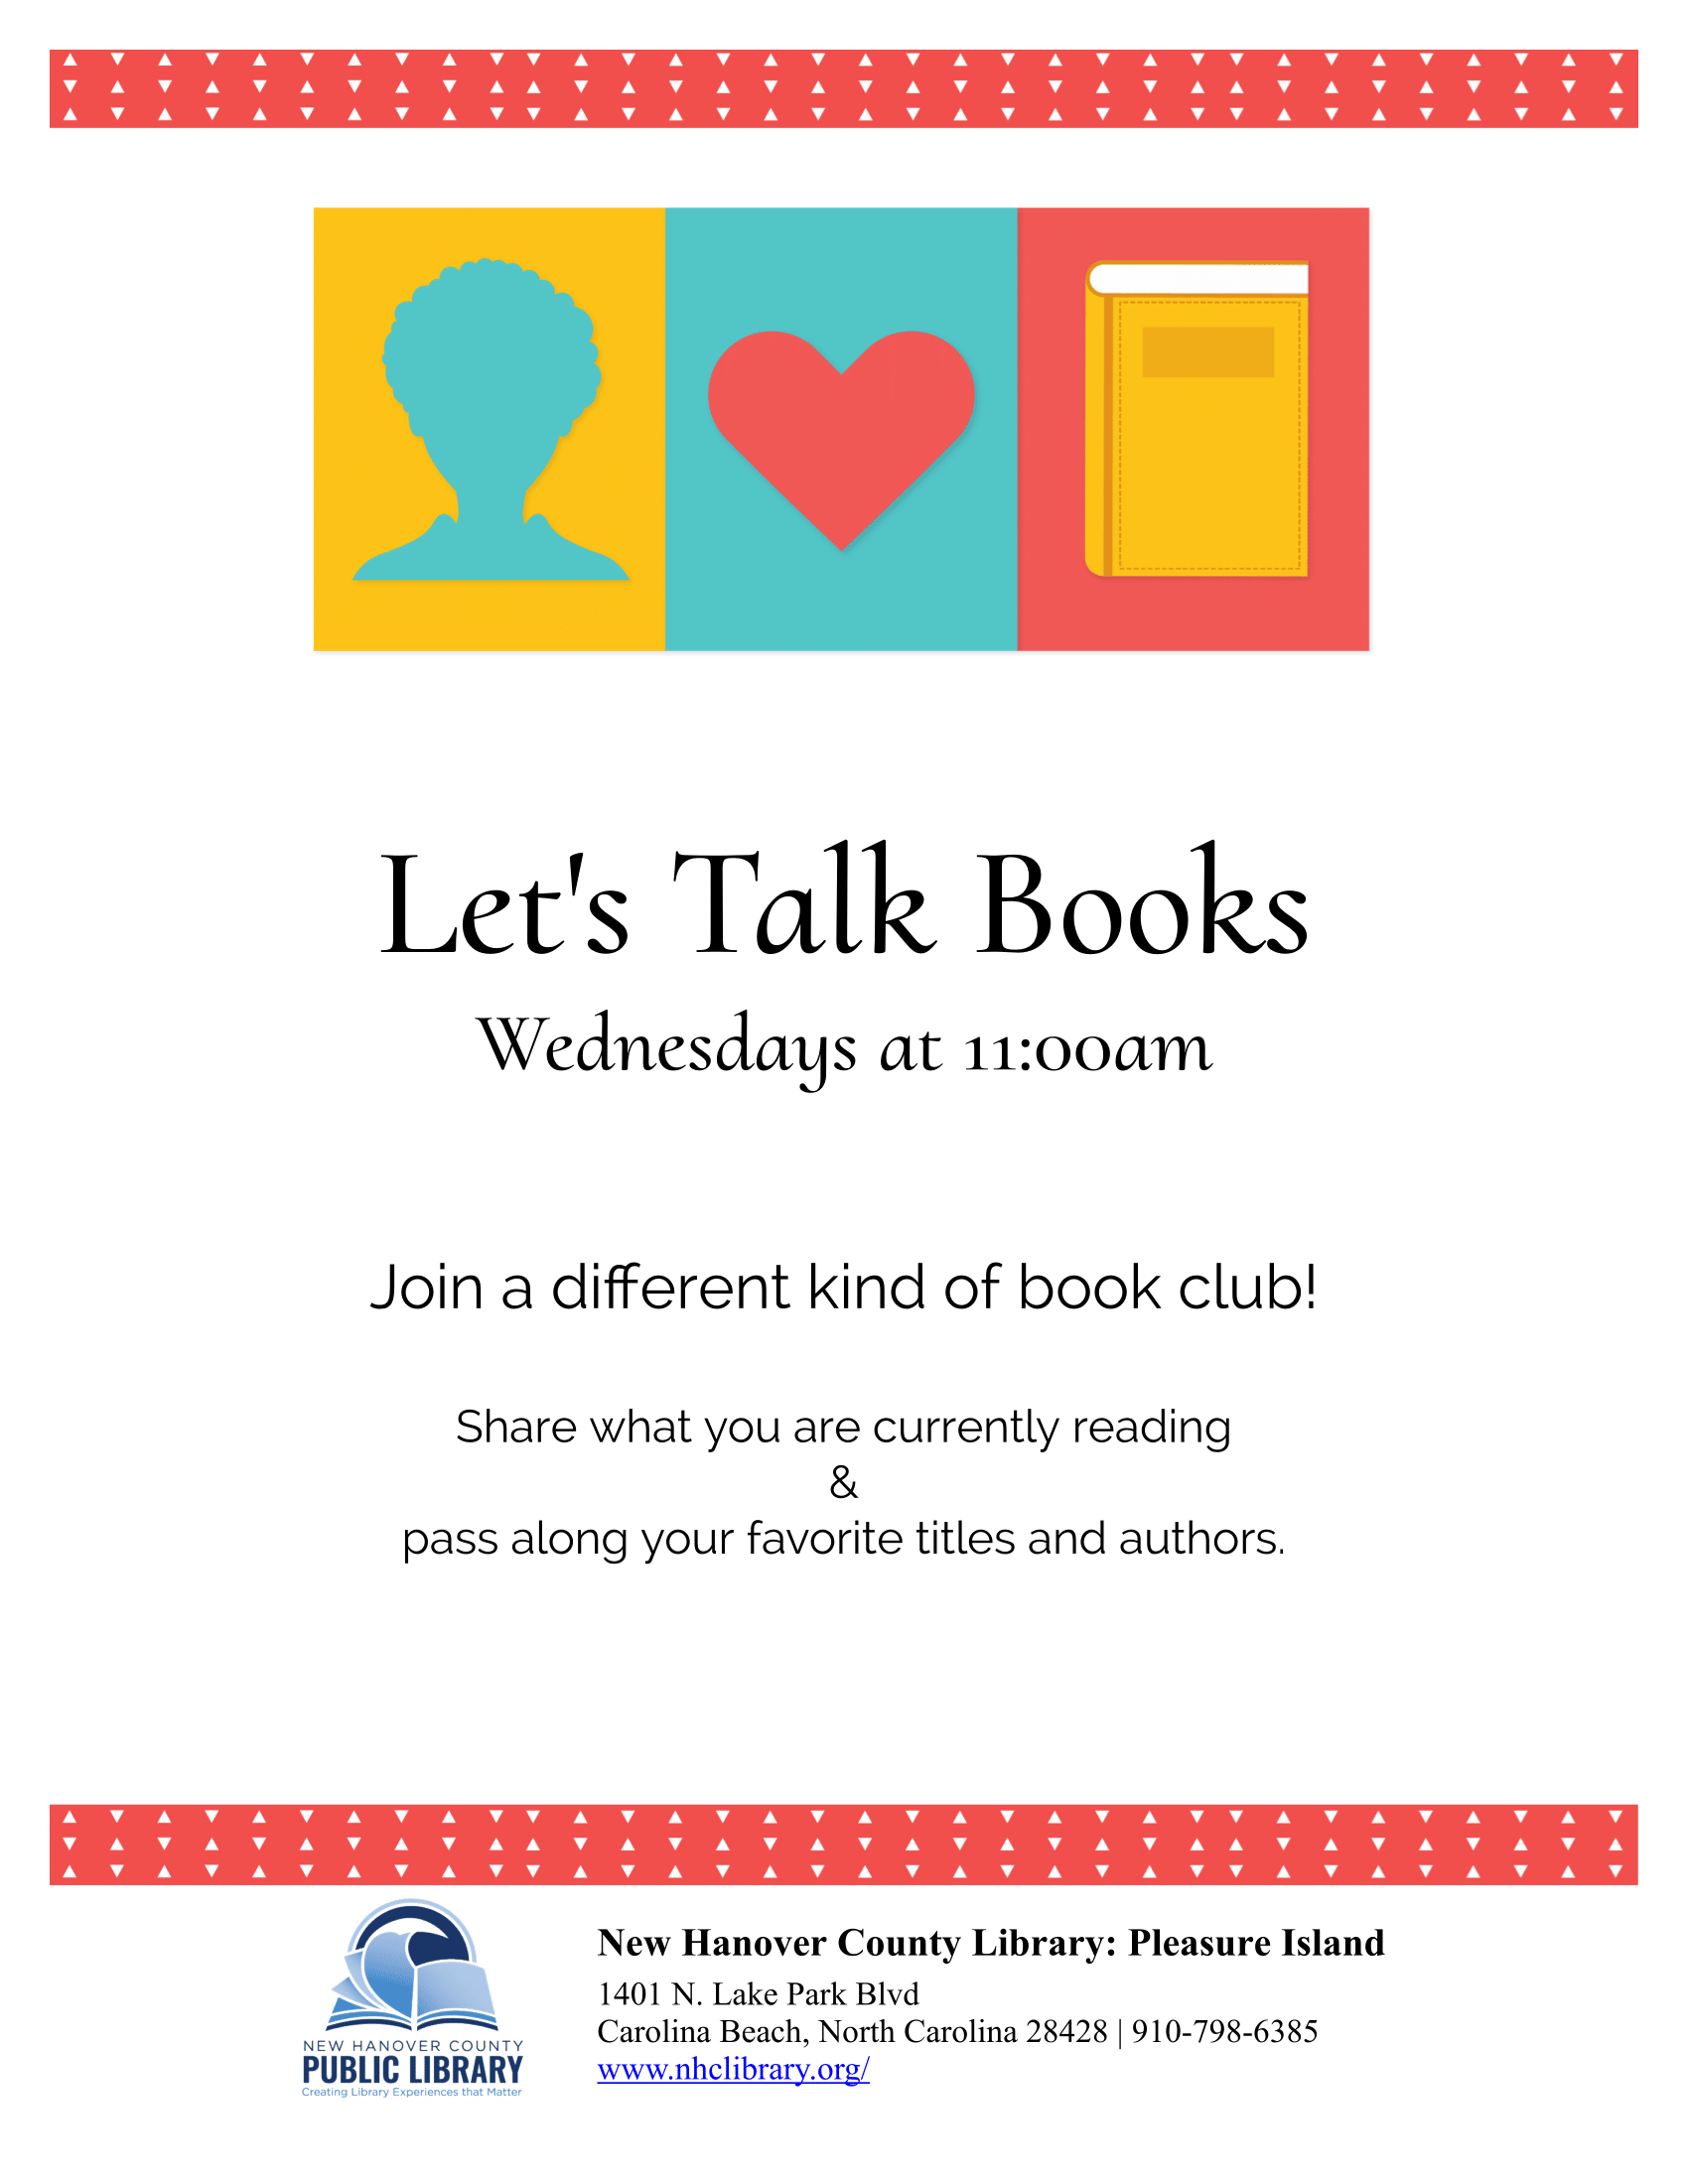 Let's Talk Books flyer